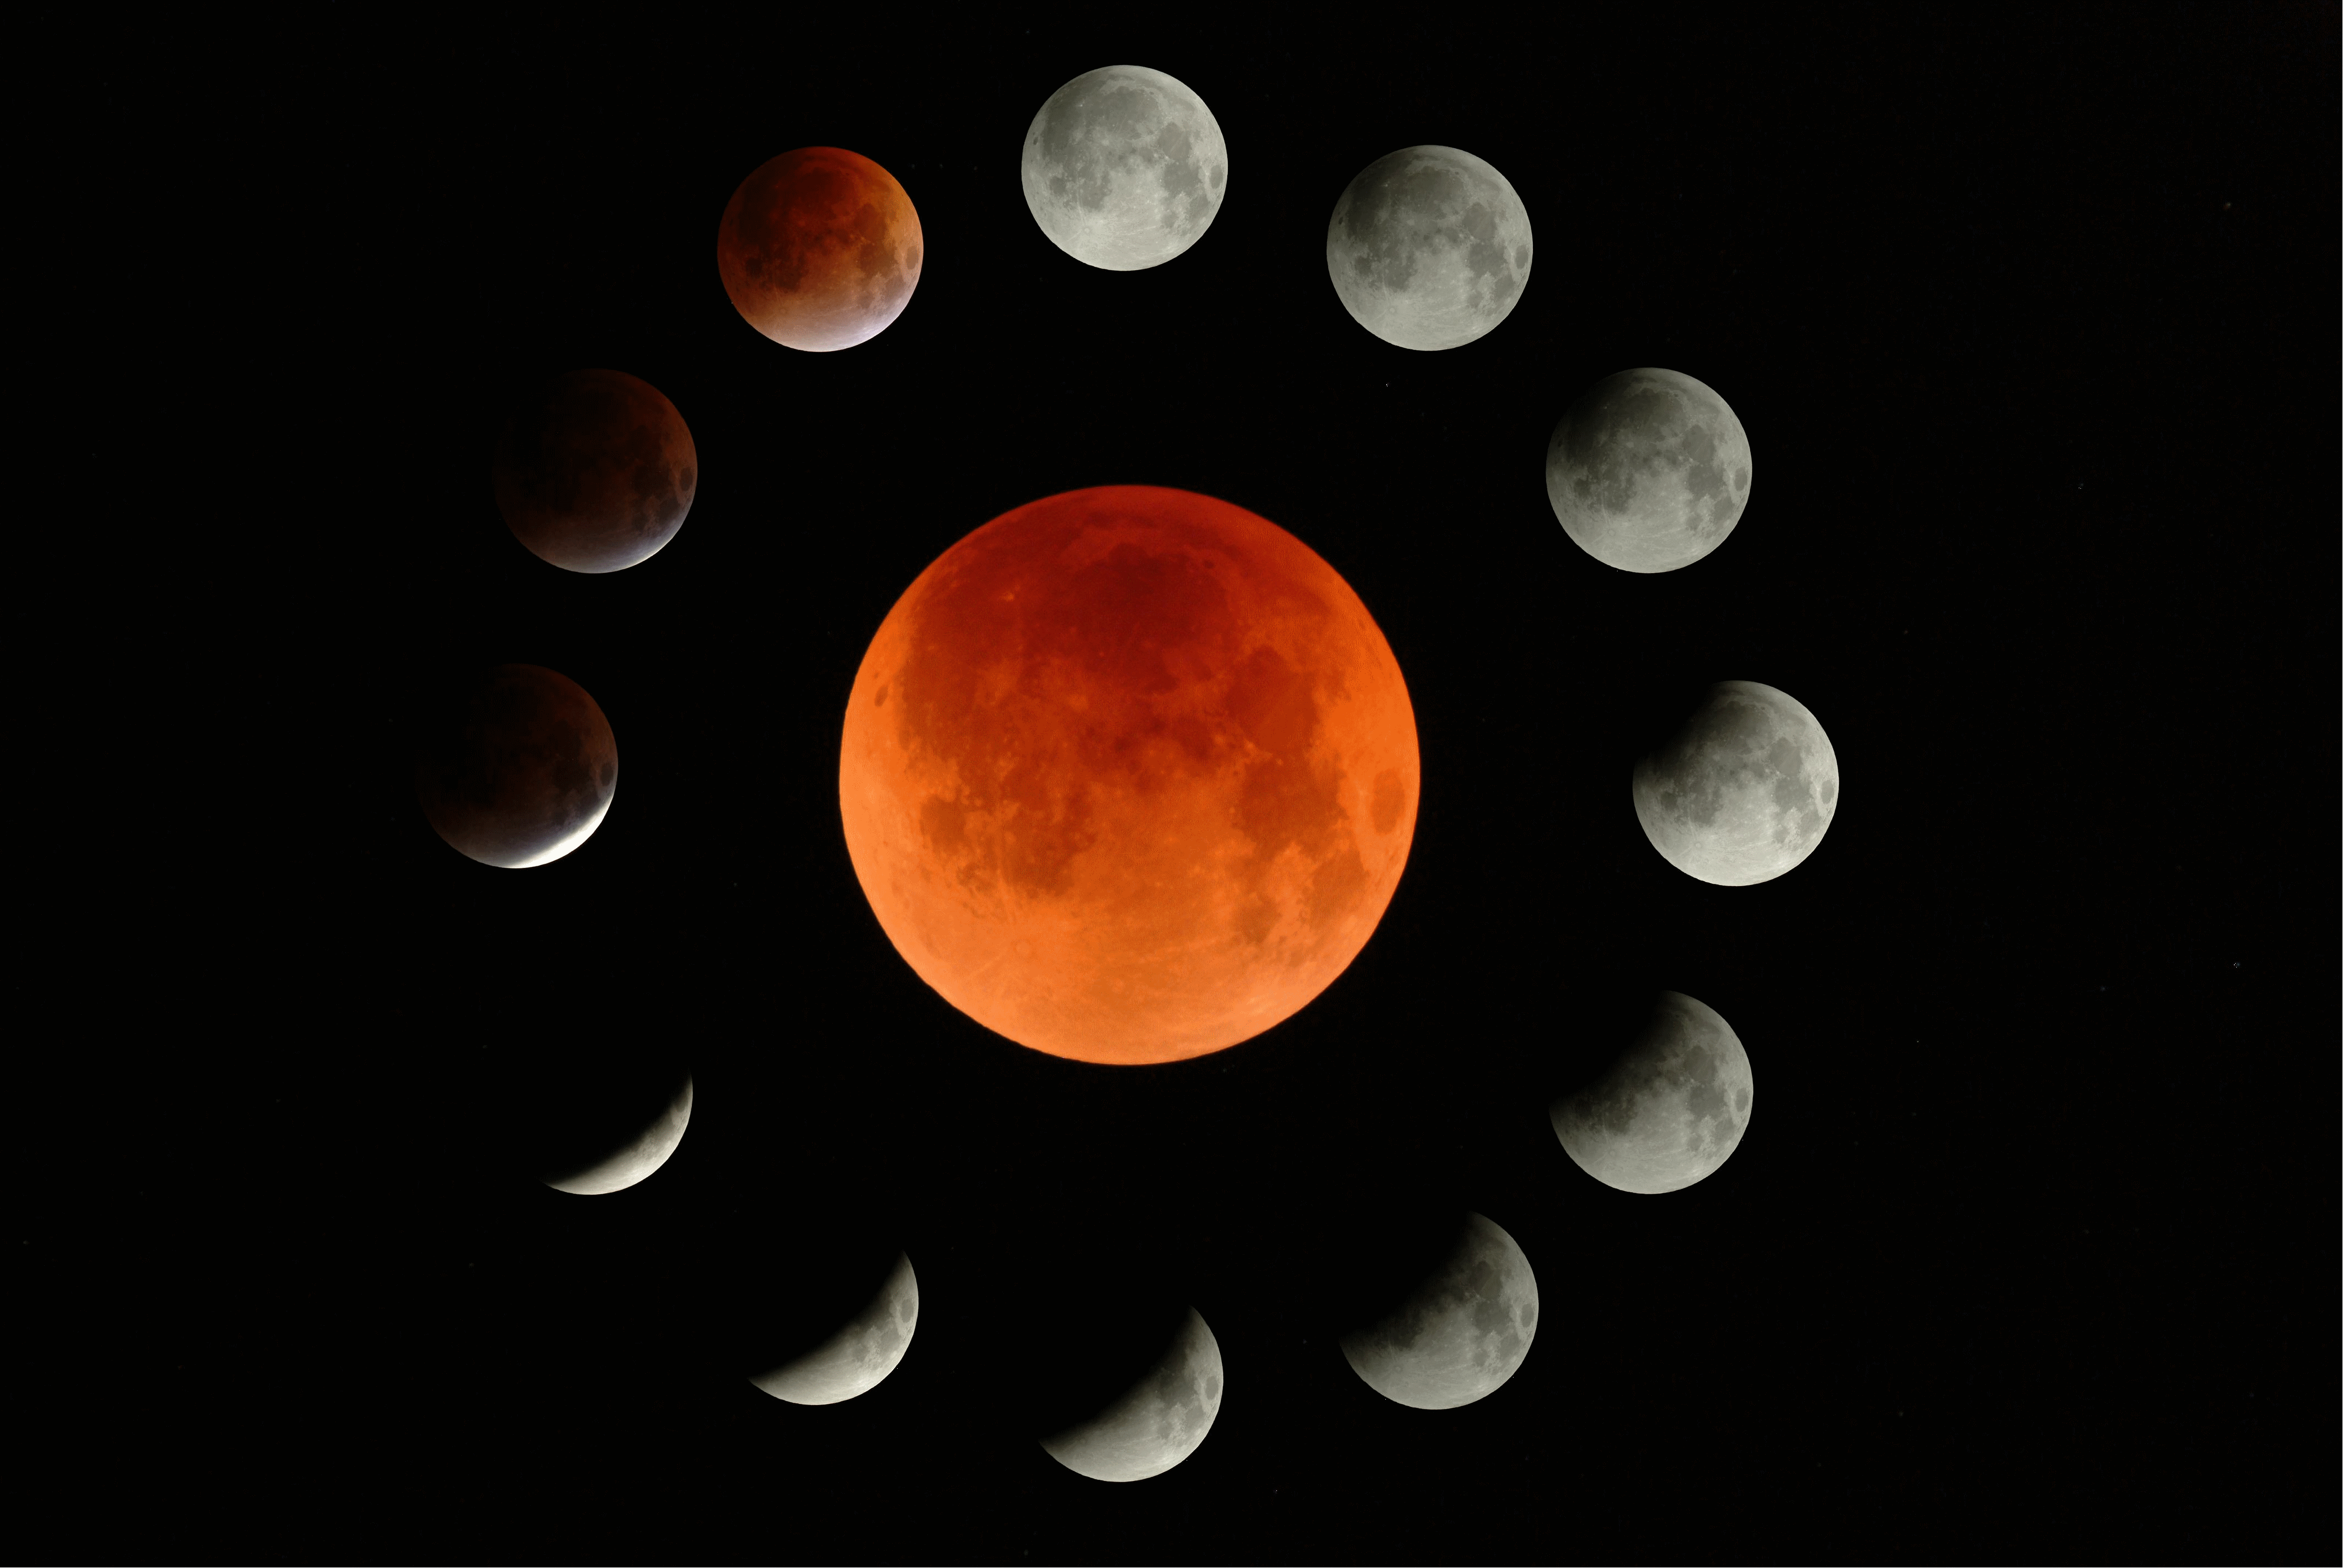 Total Lunar Eclipse by Michael B. in Portland, Oregon, with Orion ED 80 80mm f/7.5 Apochromatic Refractor Telescope.